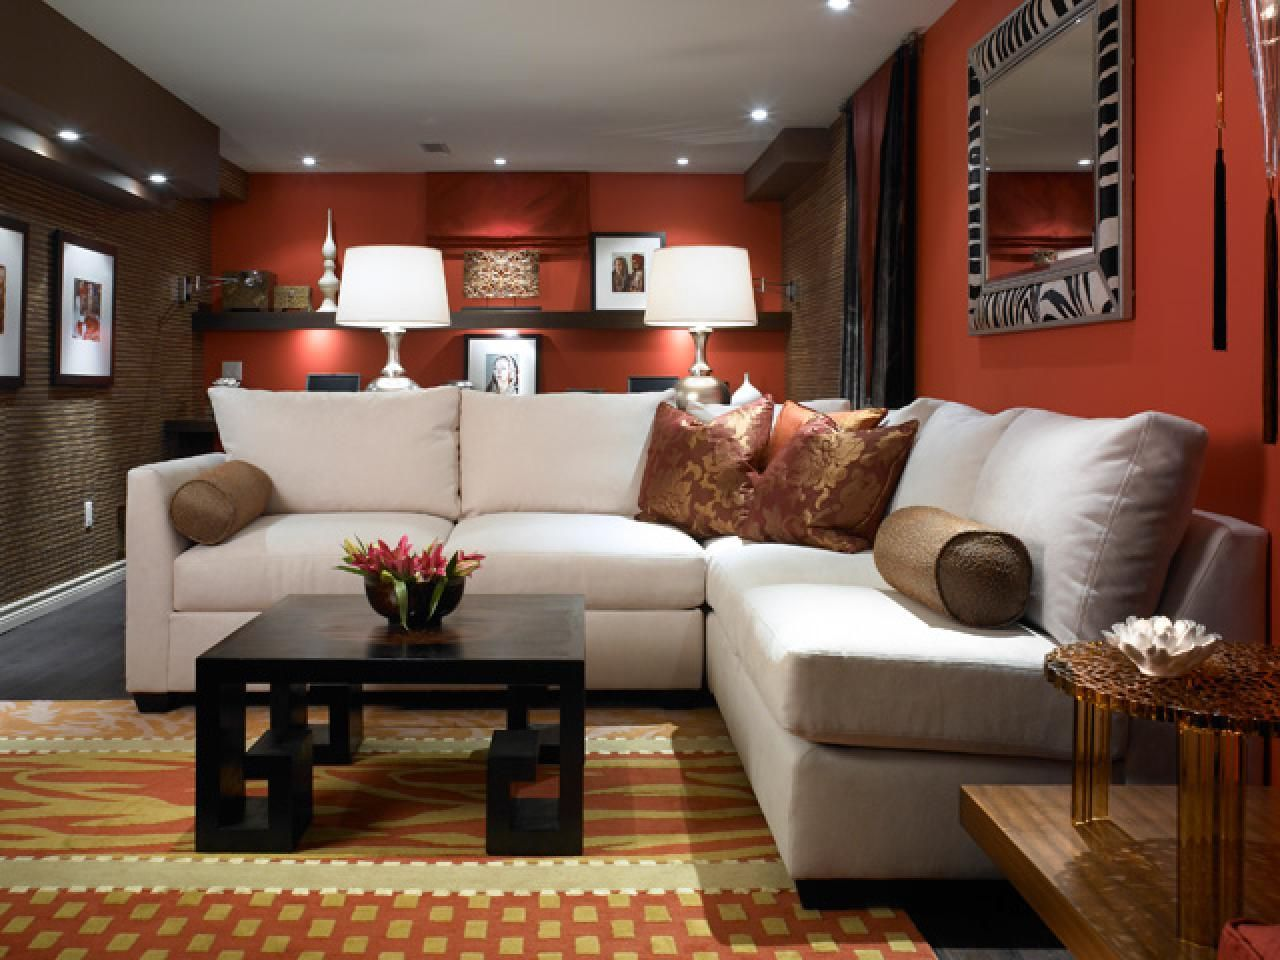 Basement Living Room Designs Magnificent Basement Makeover Ideas From Candice Olson  Basement Makeover Inspiration